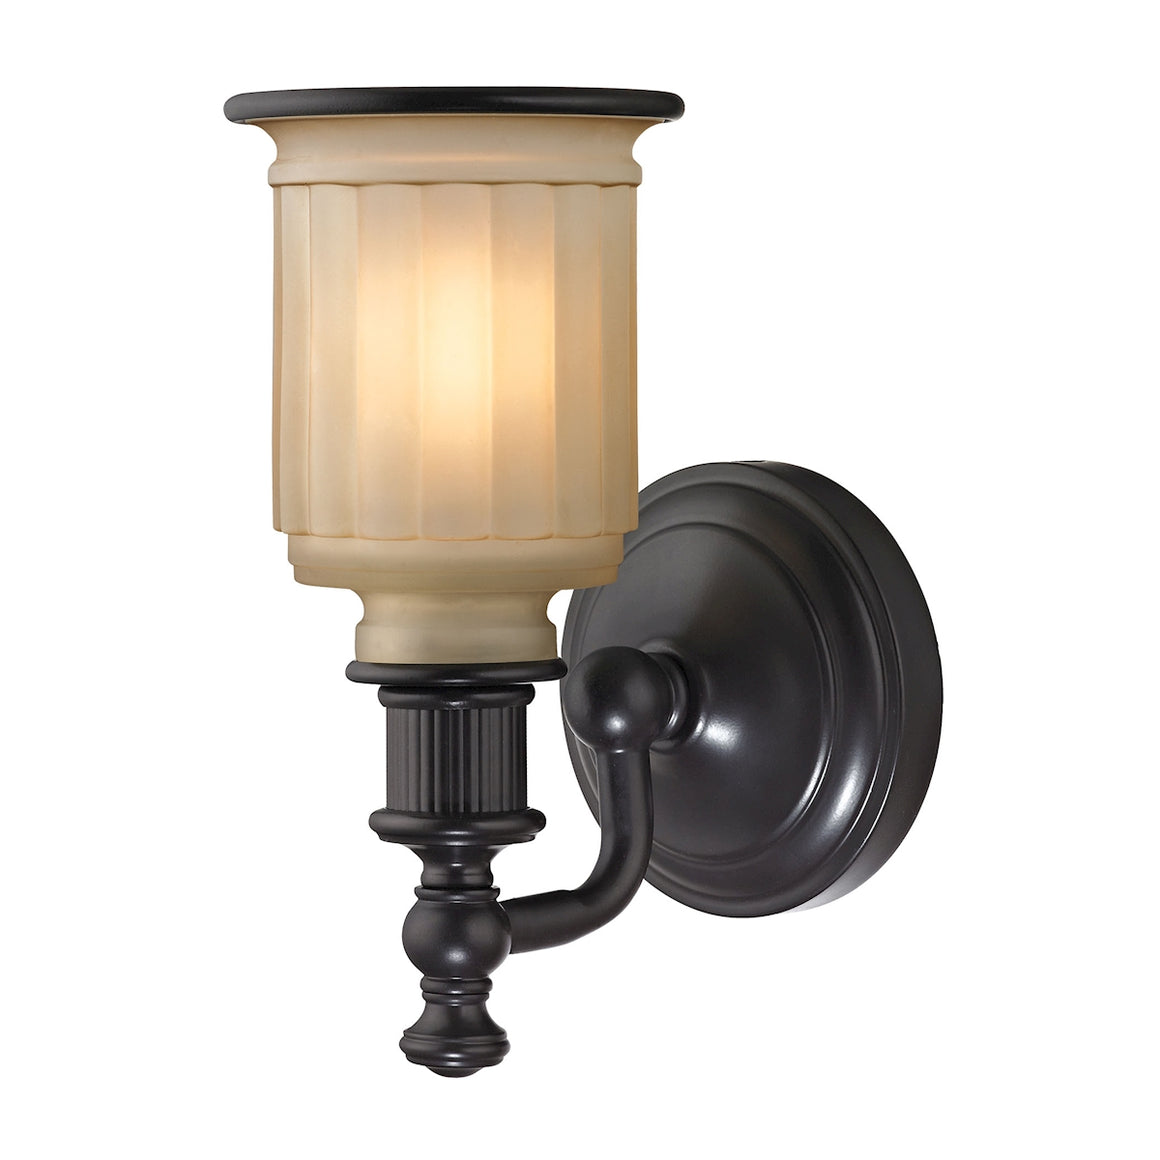 Acadia 1 Light Vanity In Oil Rubbed Bronze 52010/1 by Elk Lighting